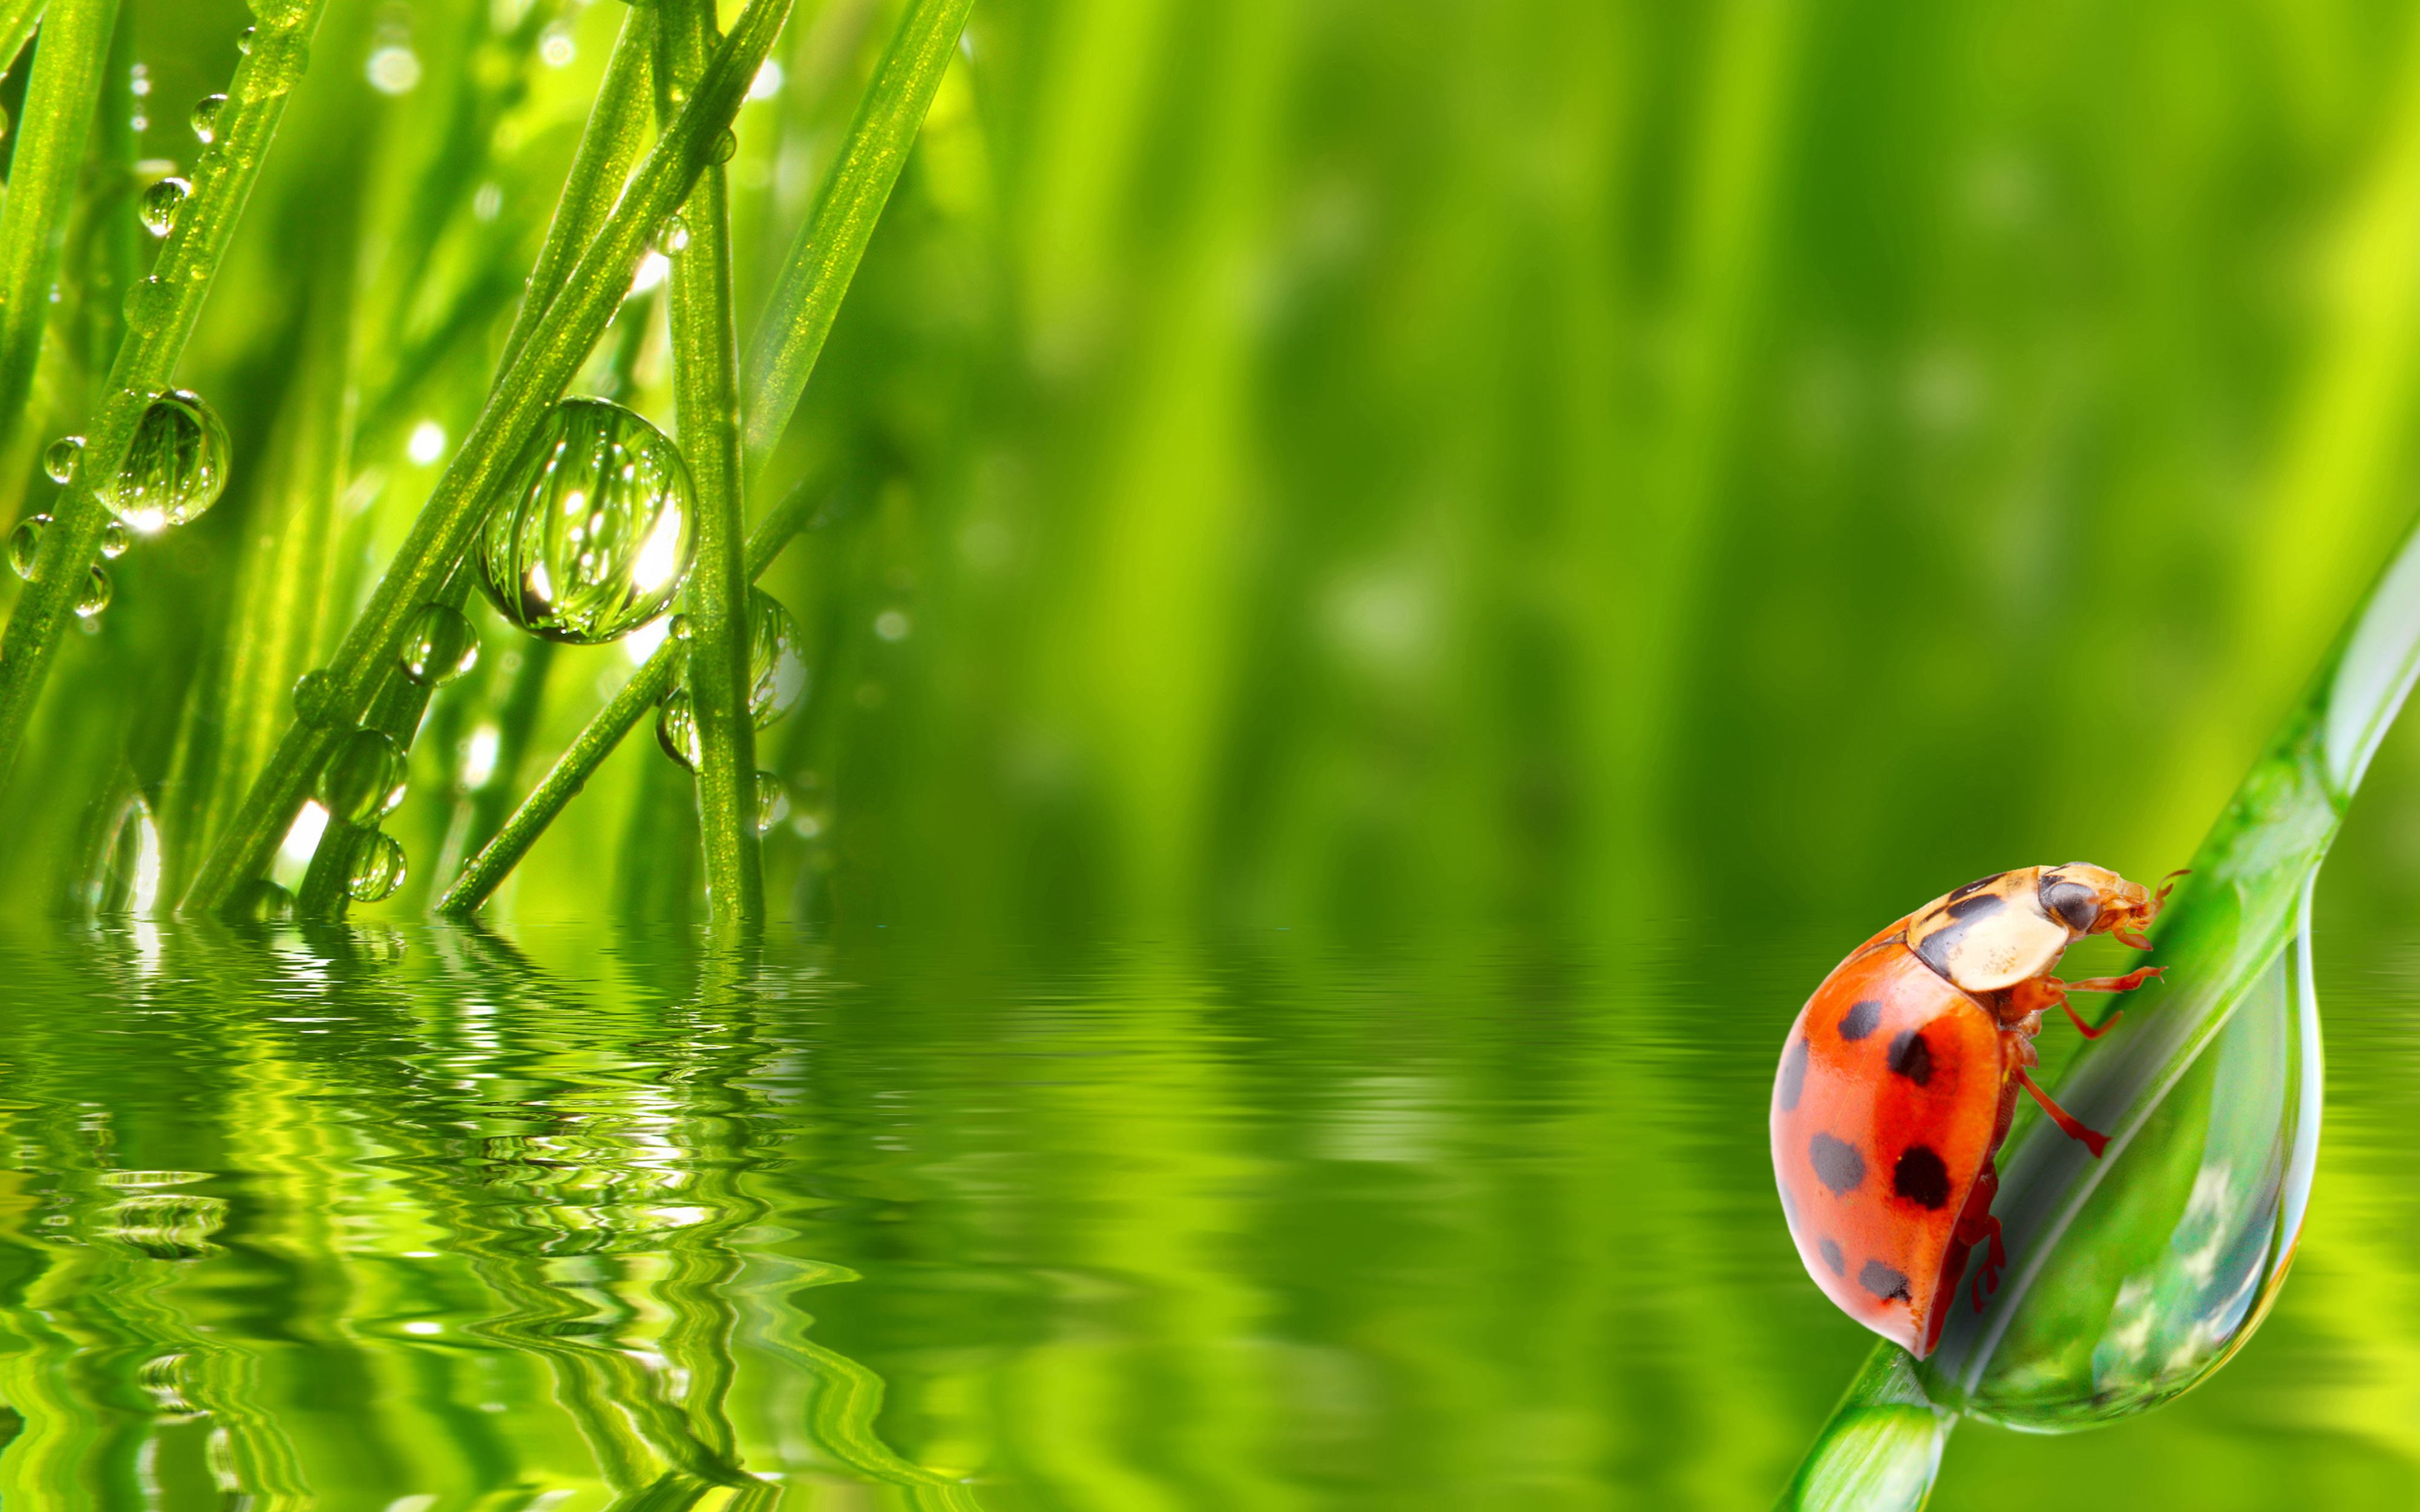 Water Drop Wallpaper For Iphone Lady Bug Insect Water Grass Morning Dew Drop Hd Wallpaper